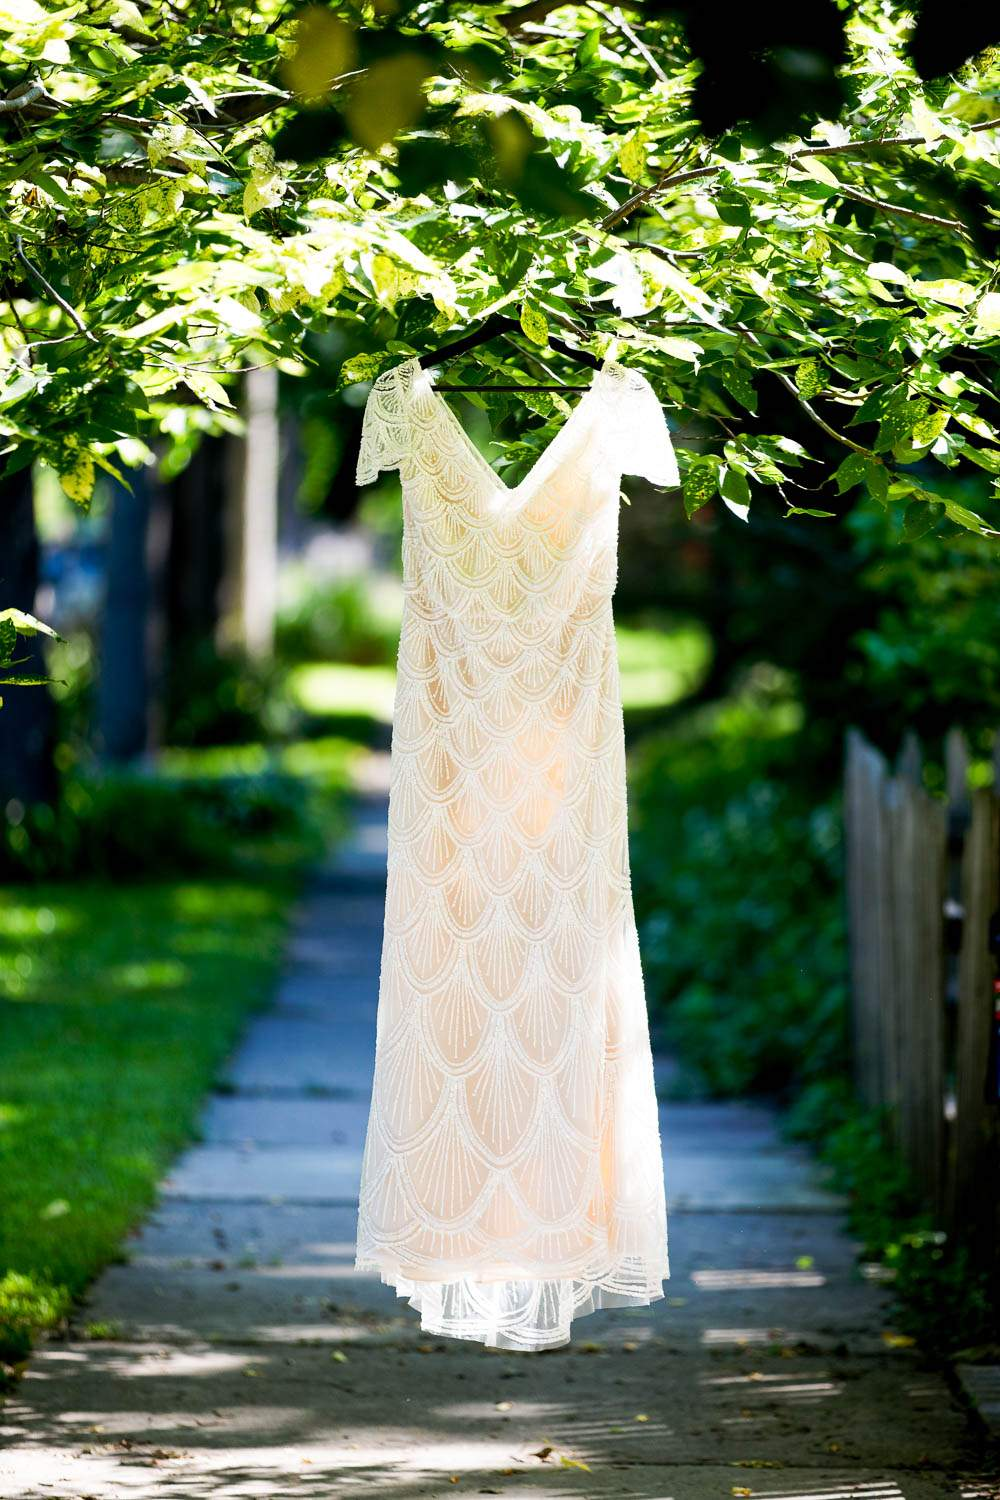 — picturesque s style wedding dress —